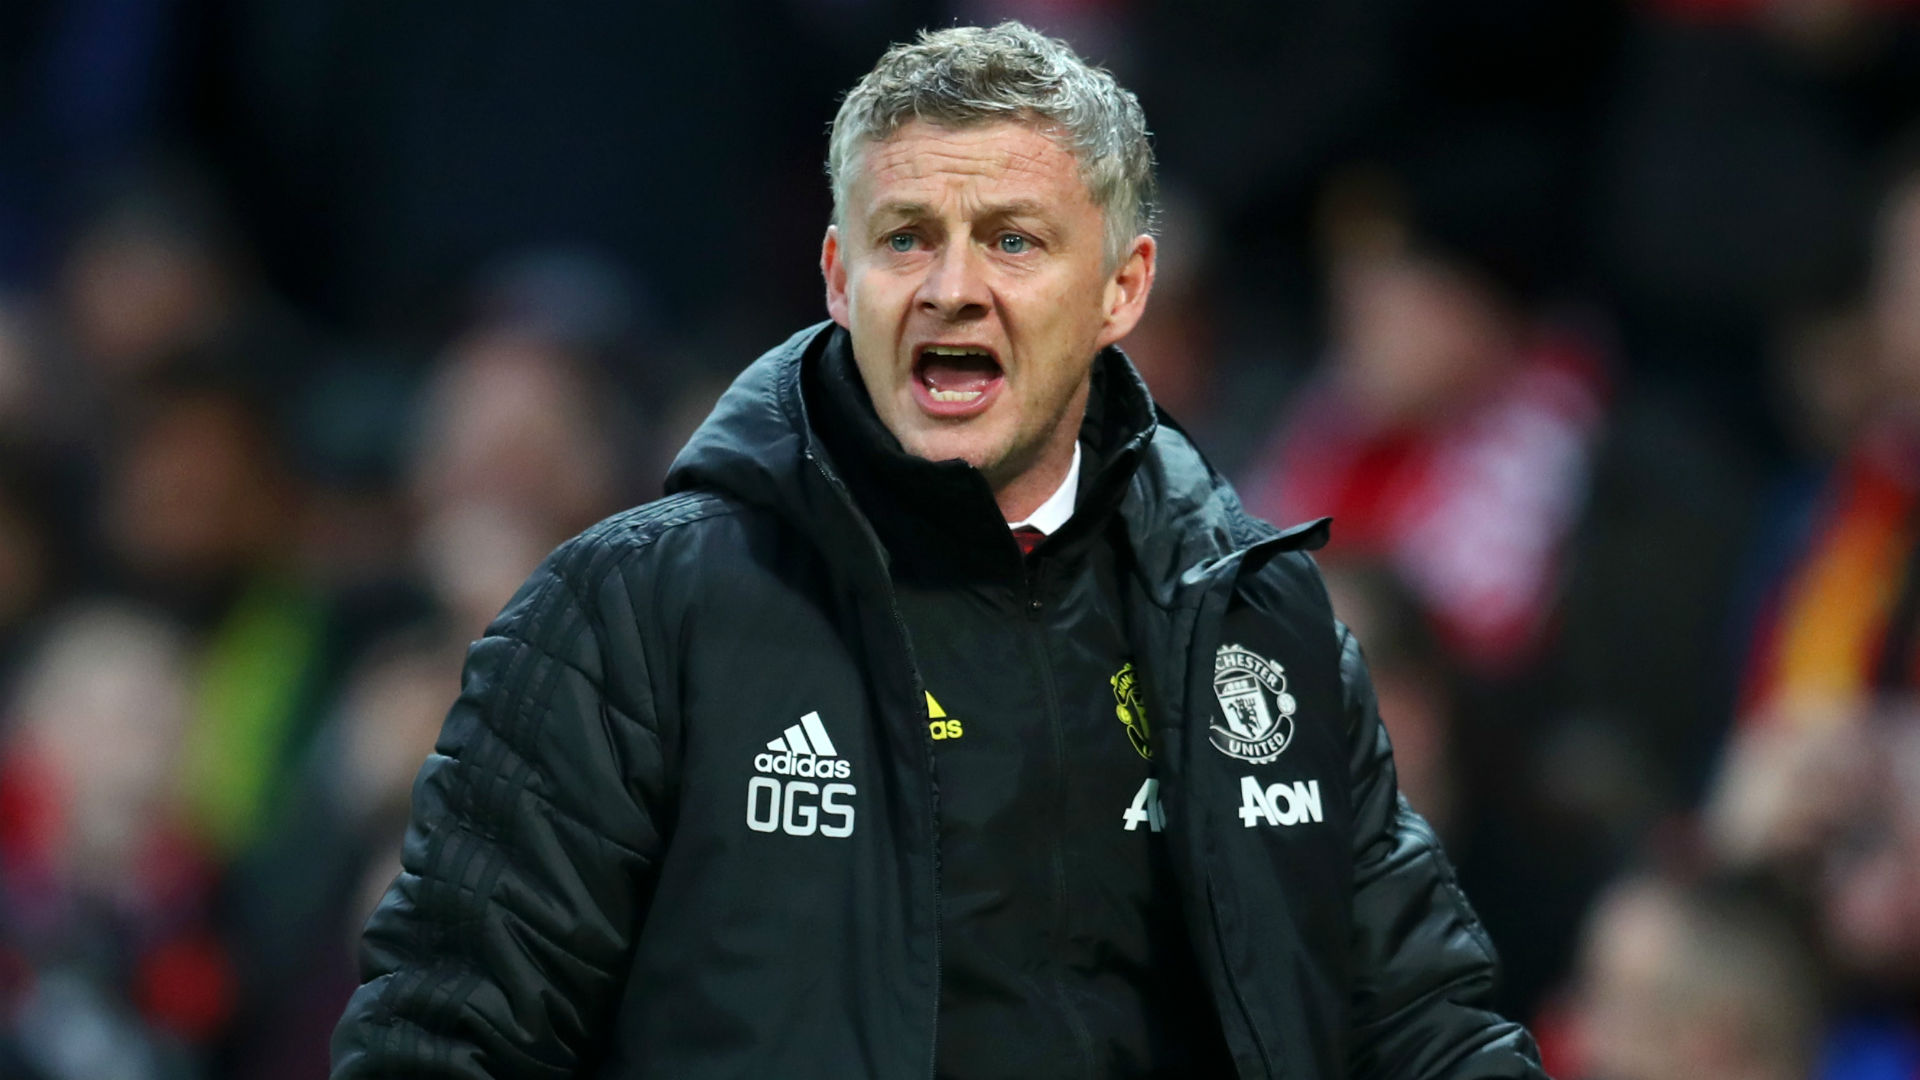 Solskjaer backs Man Utd bosses and calls for unity after fan protests